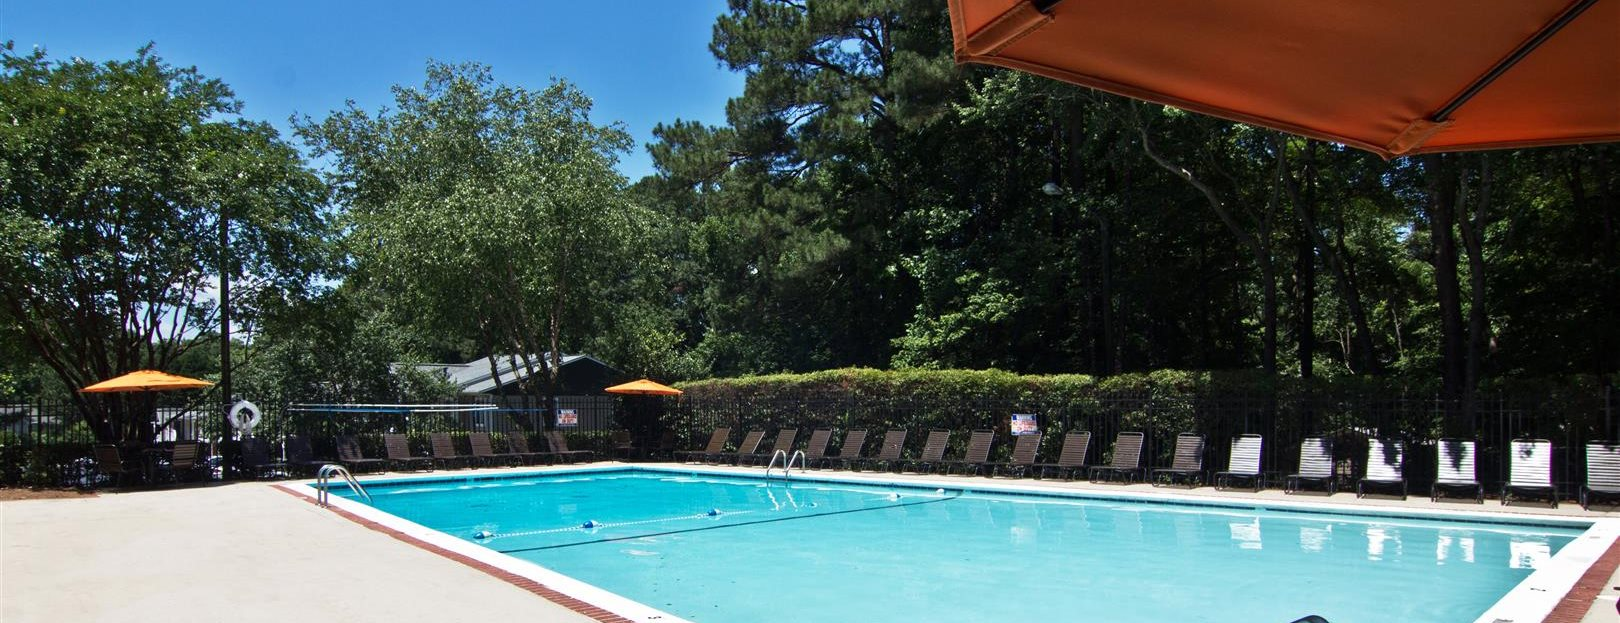 Cary Pines Apartments and Townhomes* | Apartments in Cary, NC